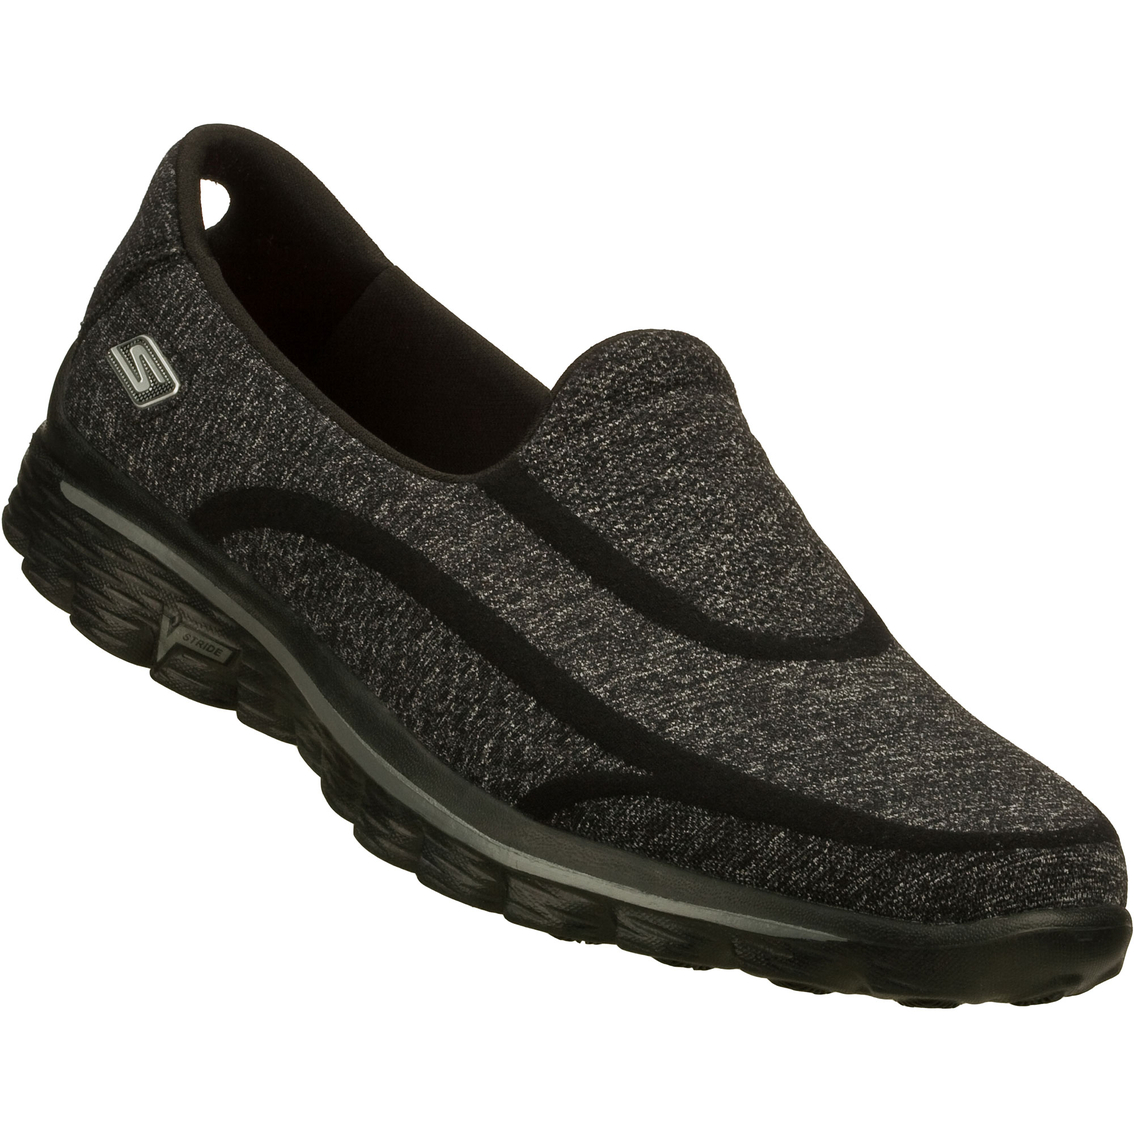 Skechers Women's Go Walk 2 Super Sock Shoes | Sneakers